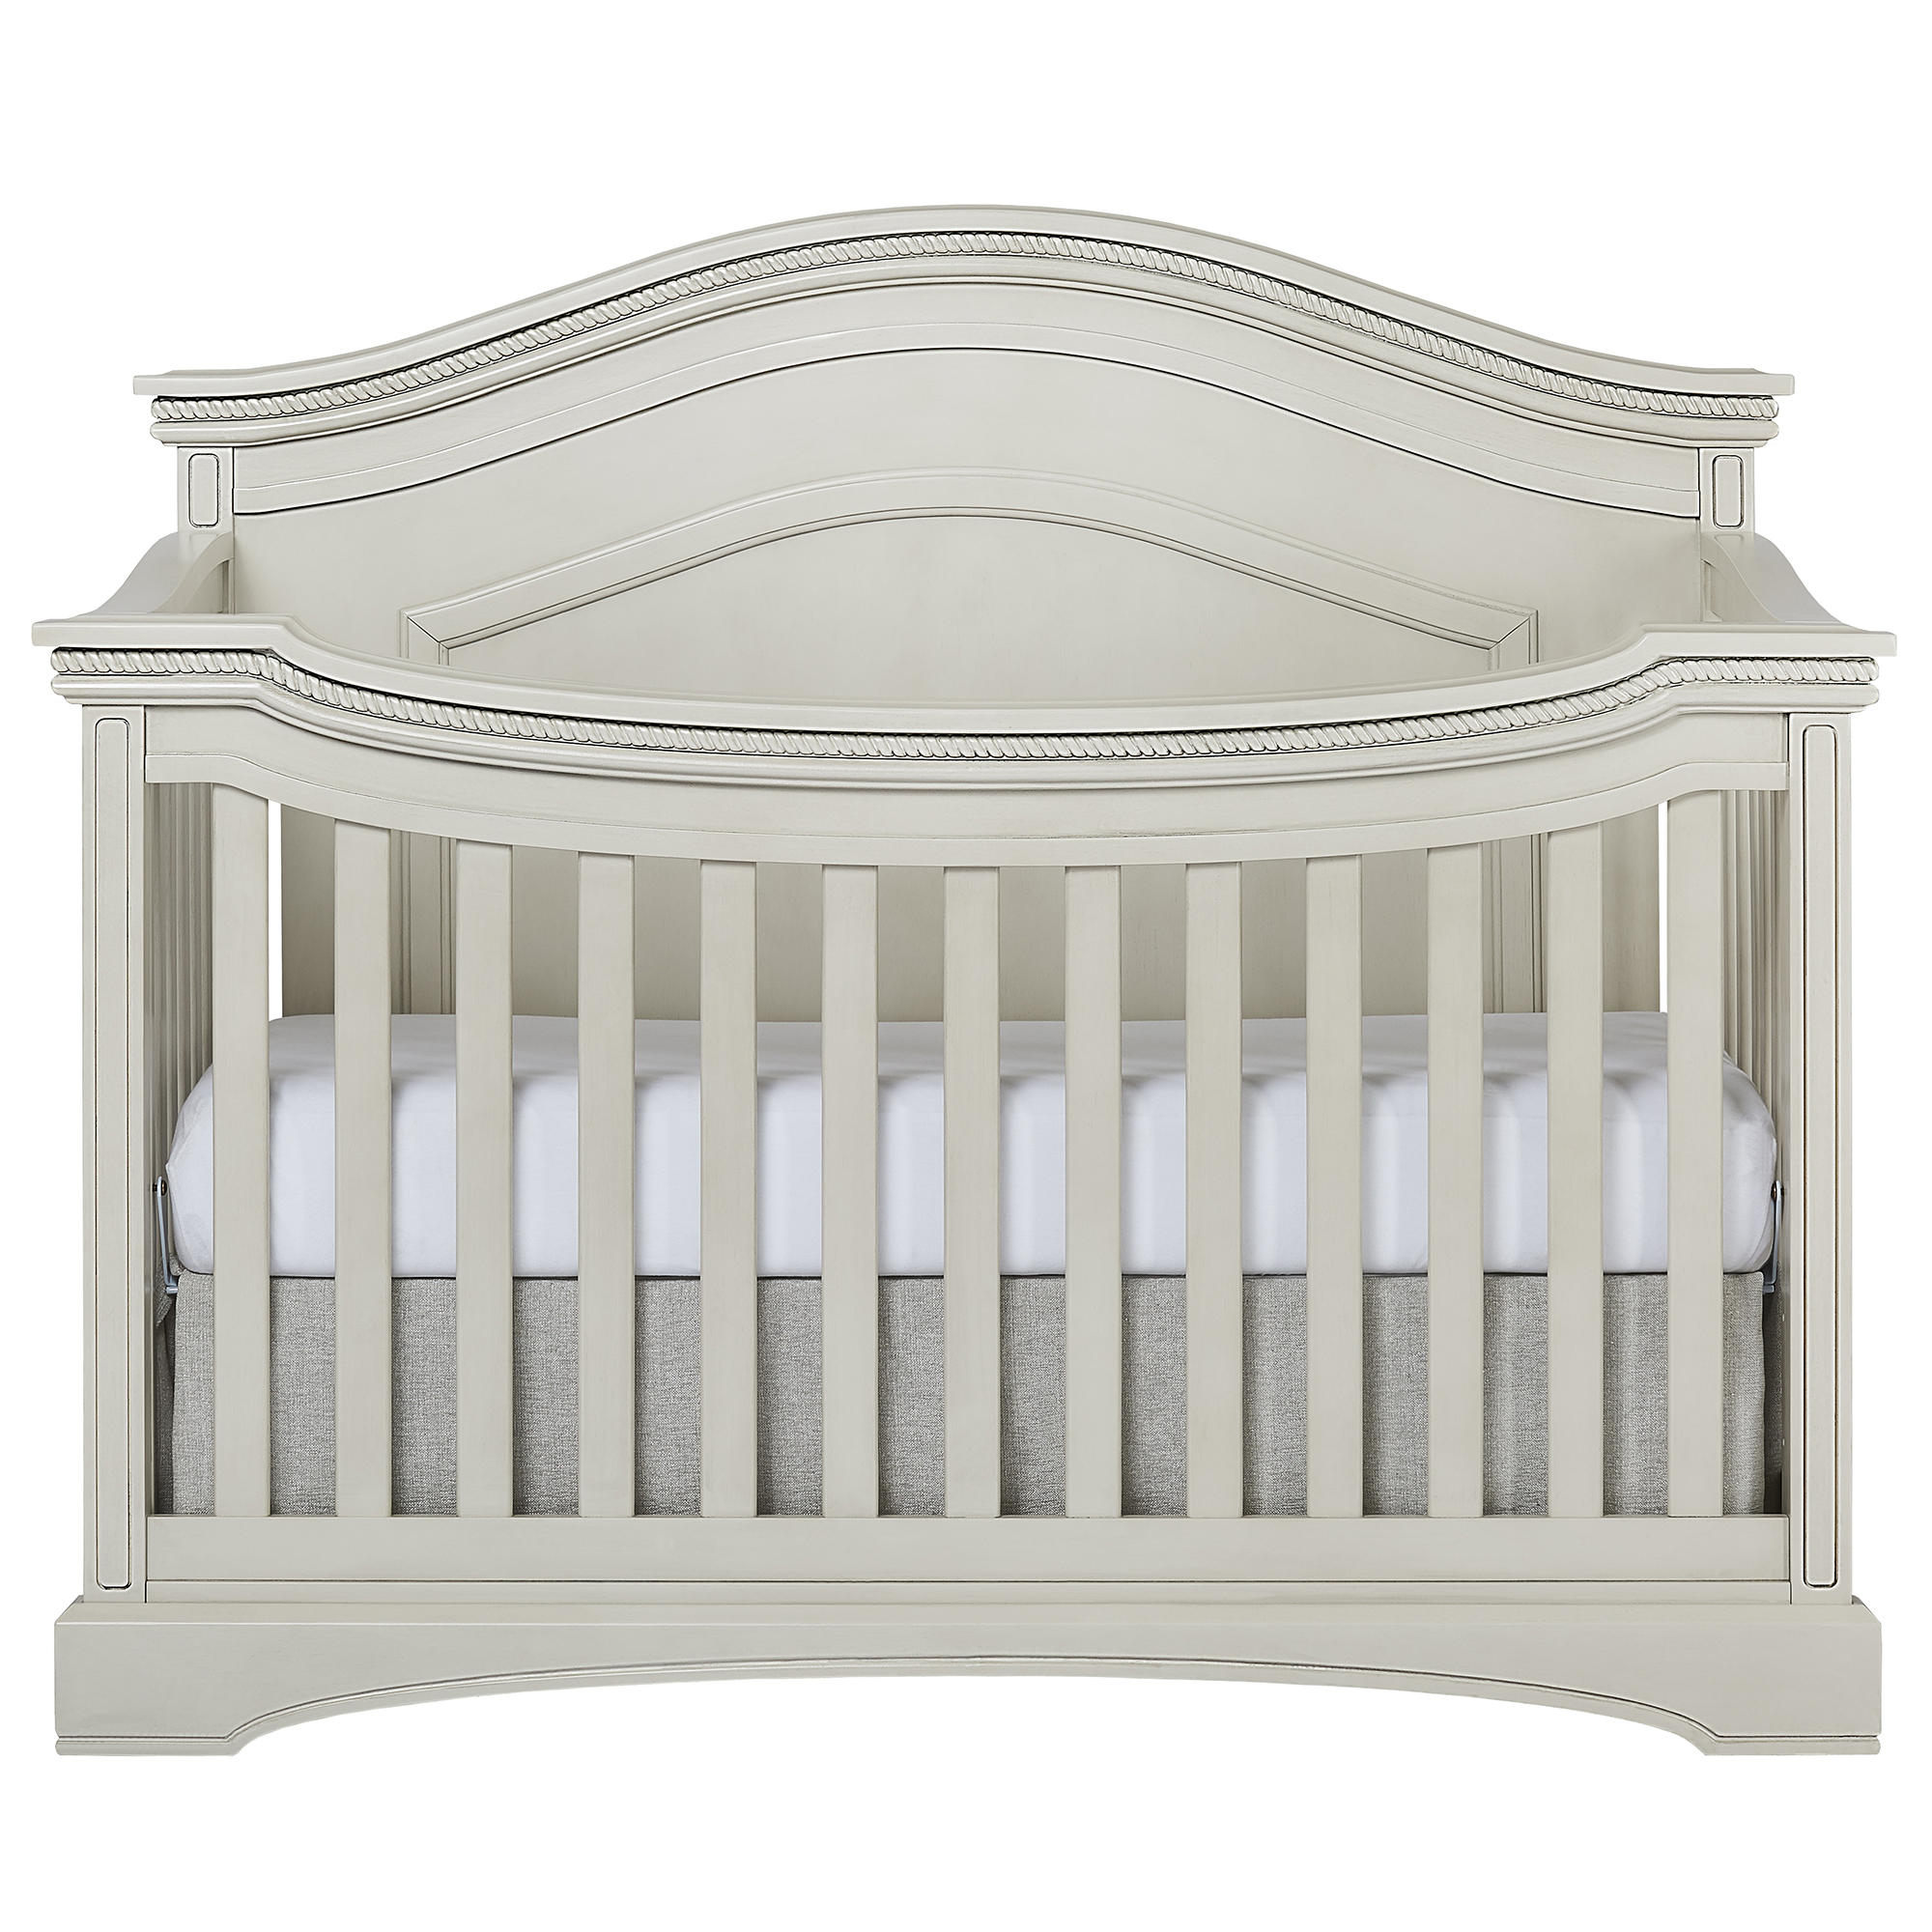 Evolur Adora Curve Top Convertible Crib, Storm Gray by Evolur